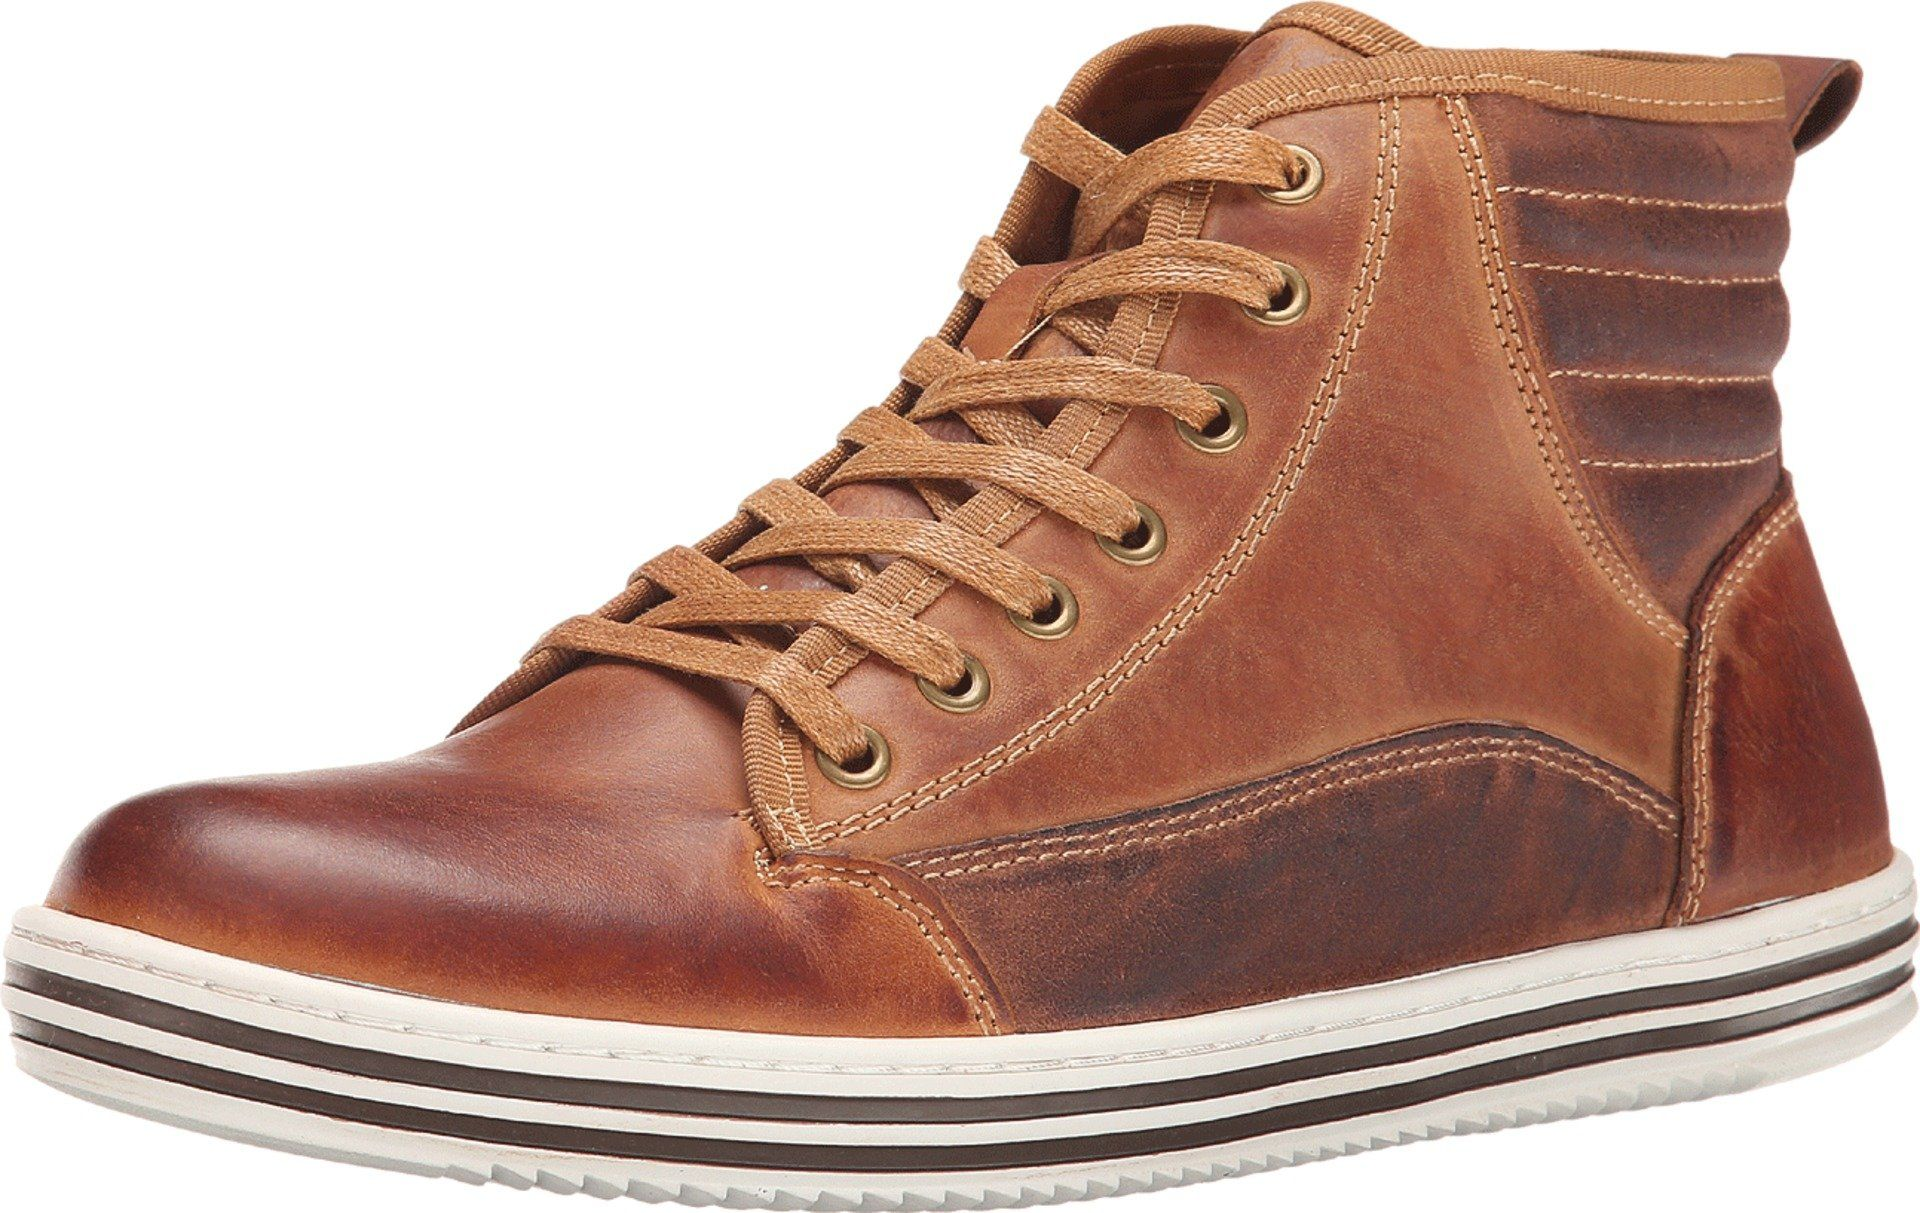 Steve Madden Men's Reasonur Tan Leather Sneaker 10.5 D - Medium